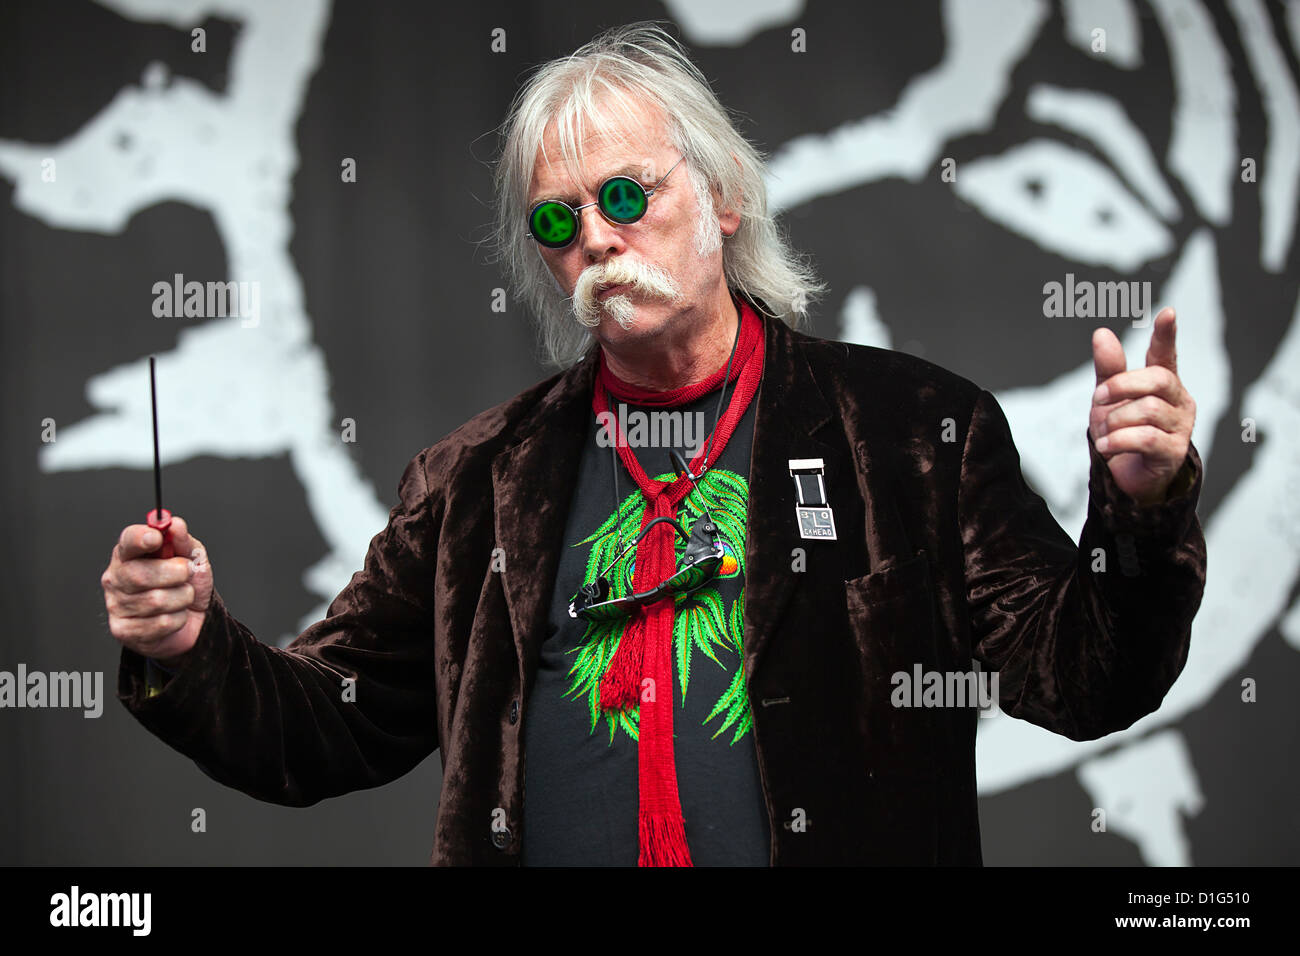 Musician Derek 'the draw' Hussey seen performing as lead vocalist for punk band The Blockheads at Beautiful - Stock Image